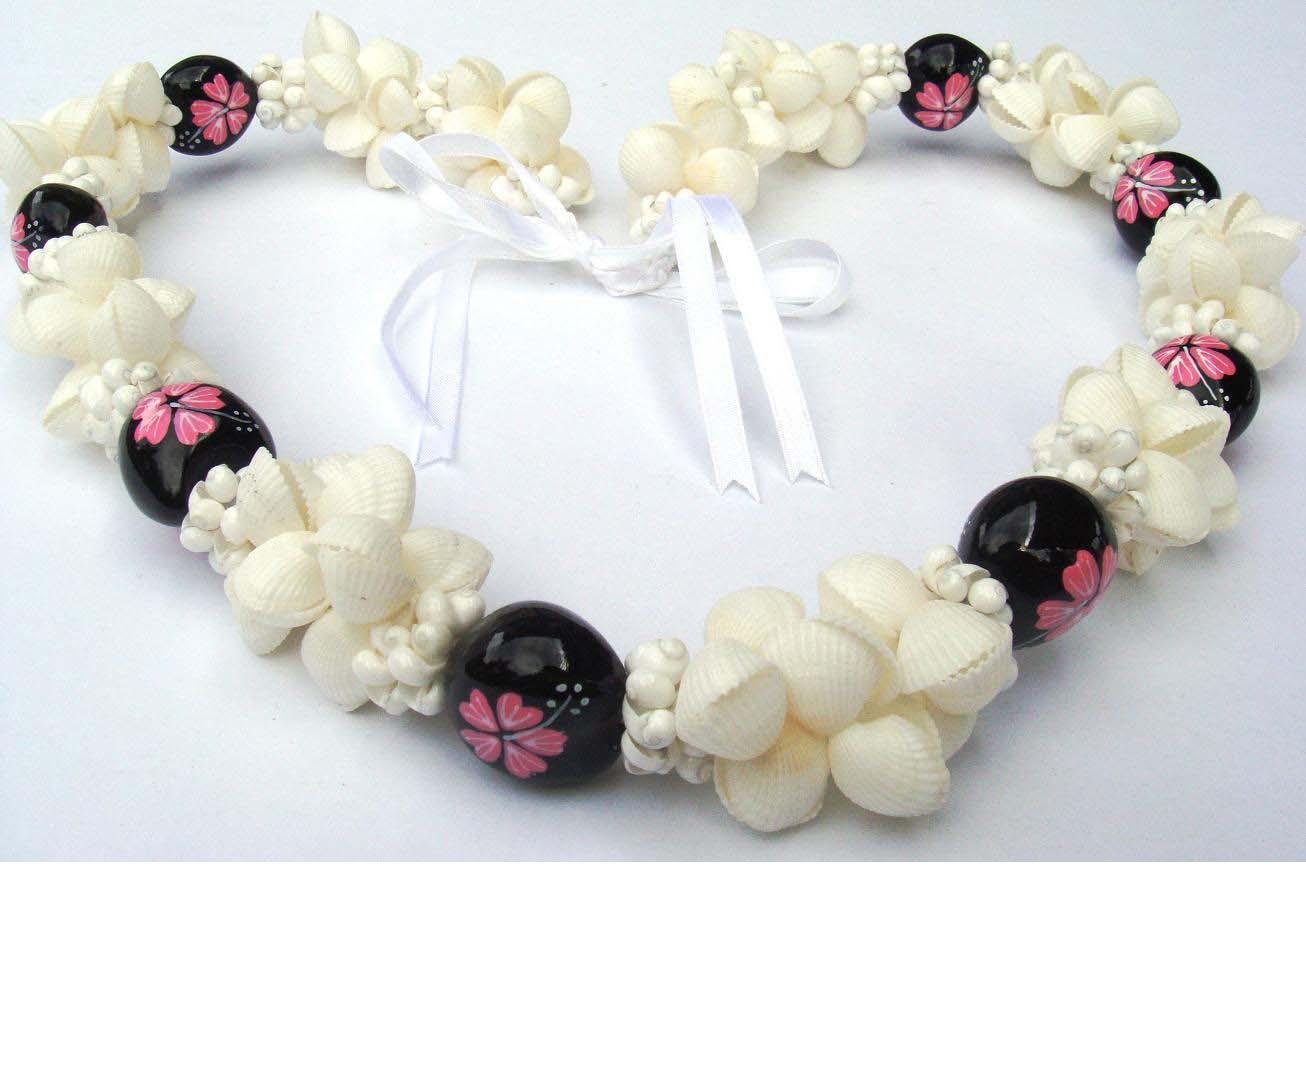 kukui nut and shell necklace